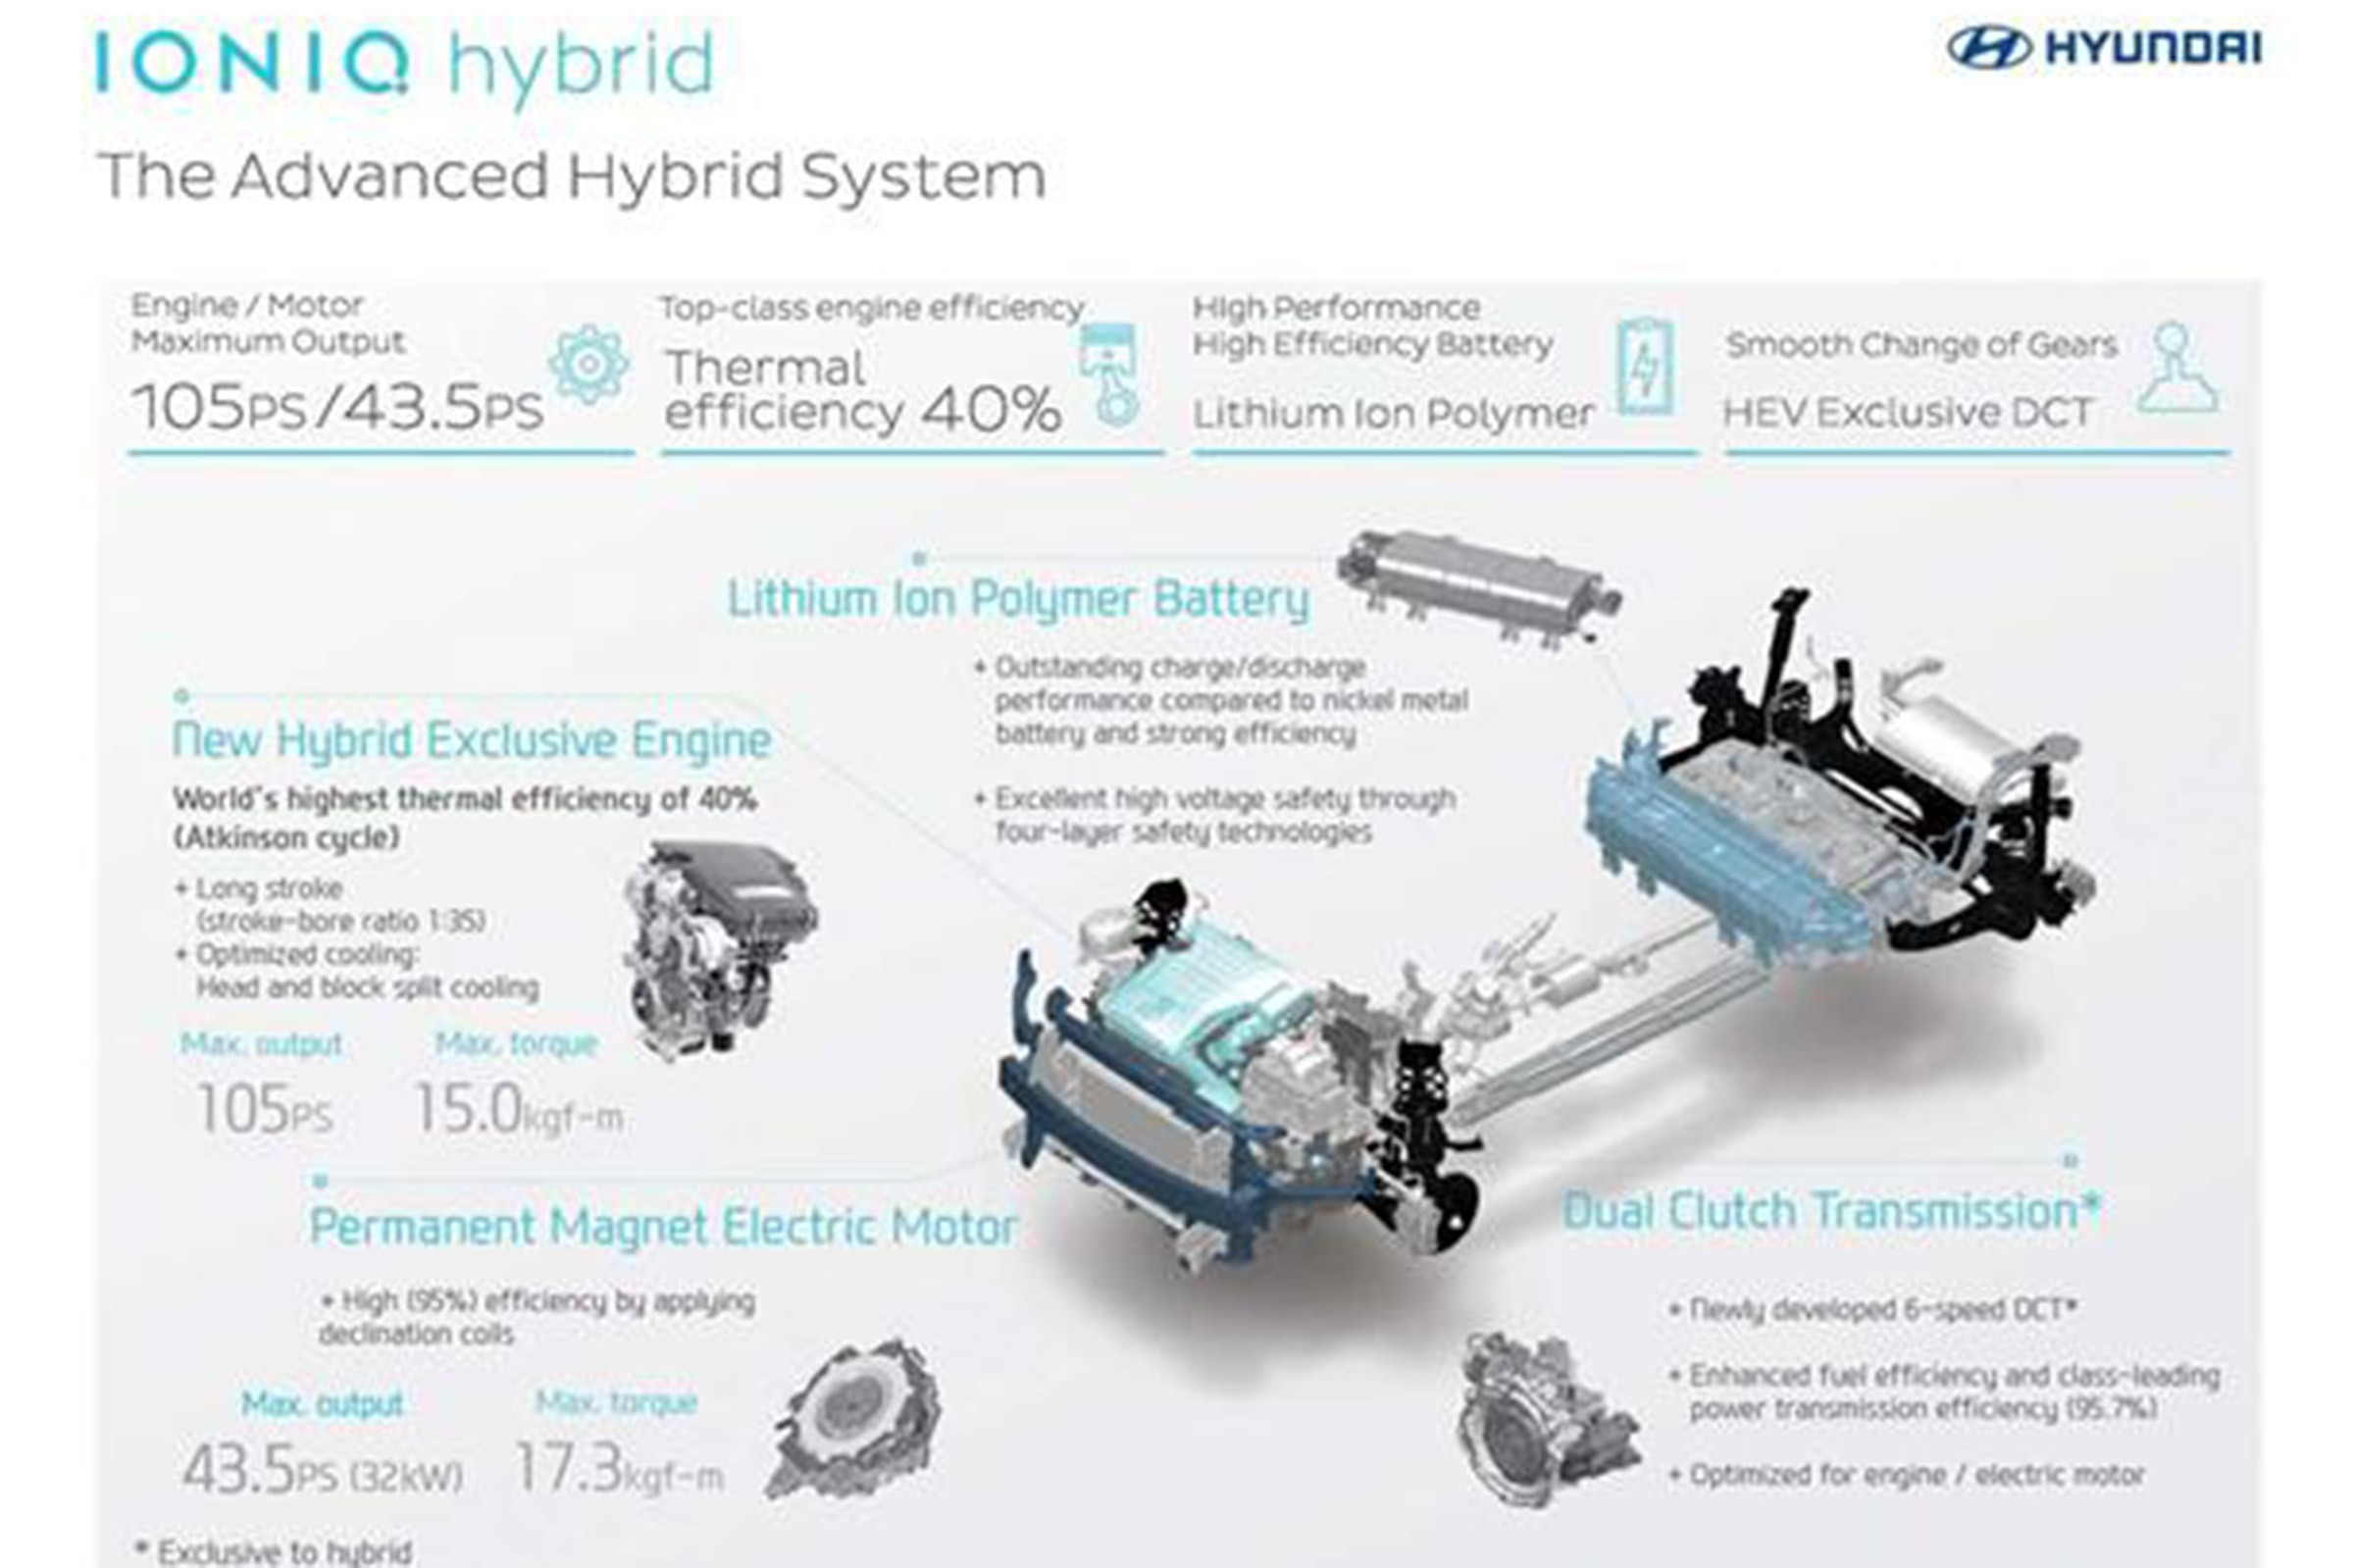 Toyota Prius Engine Diagram 2010 2015 Air Filter Hyundai And Kia Plan Eco Explosion With Major Hybrid Tech Roll Out Of